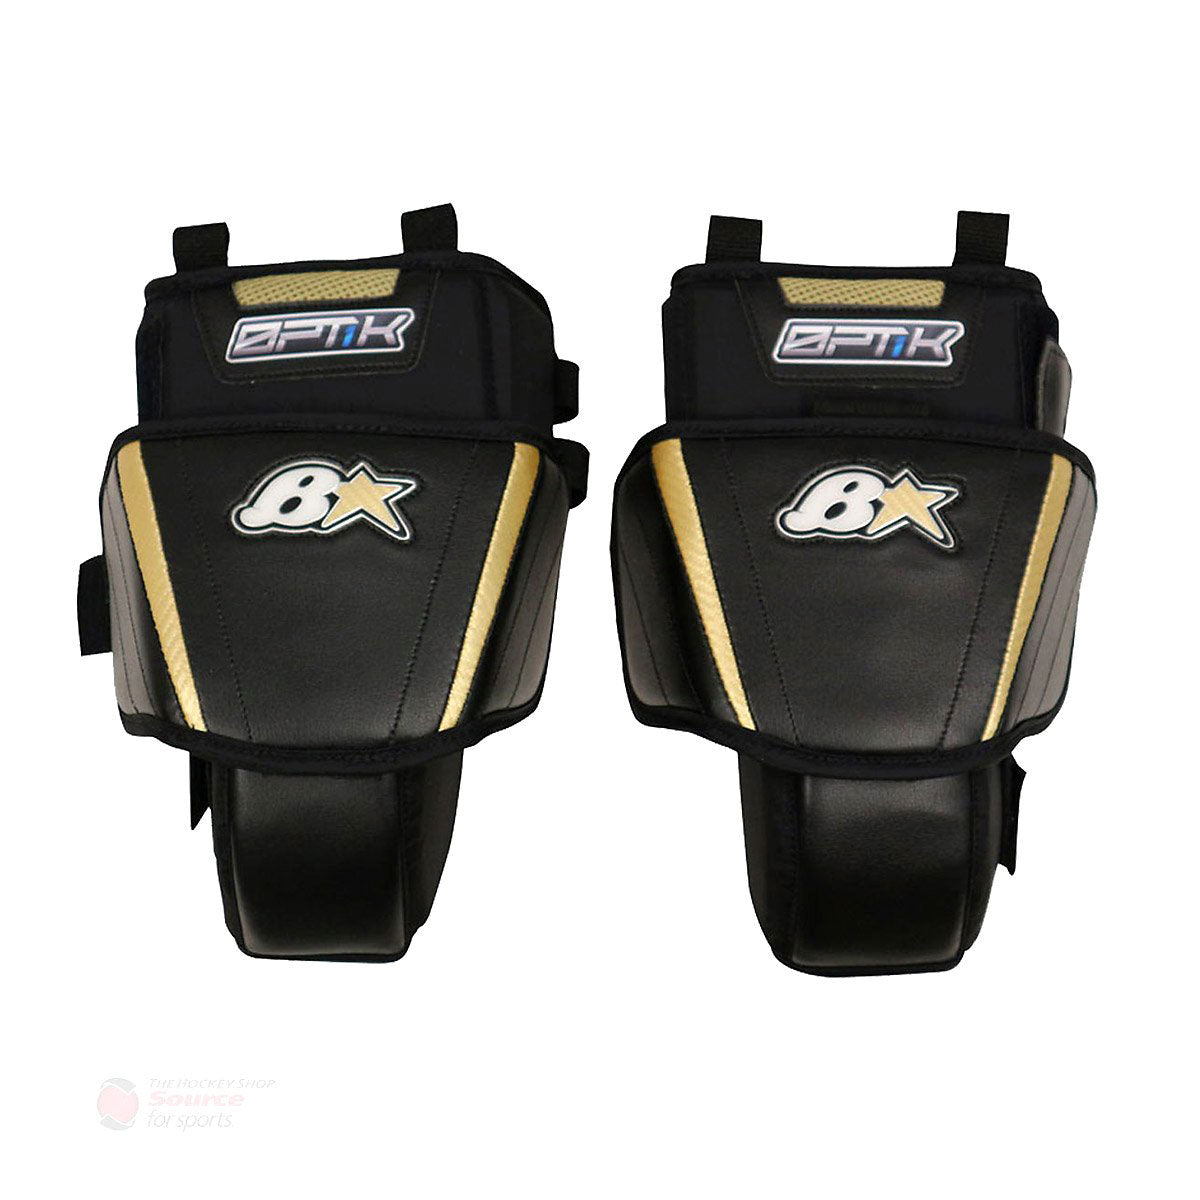 Brian's OPTiK Senior Knee Pads